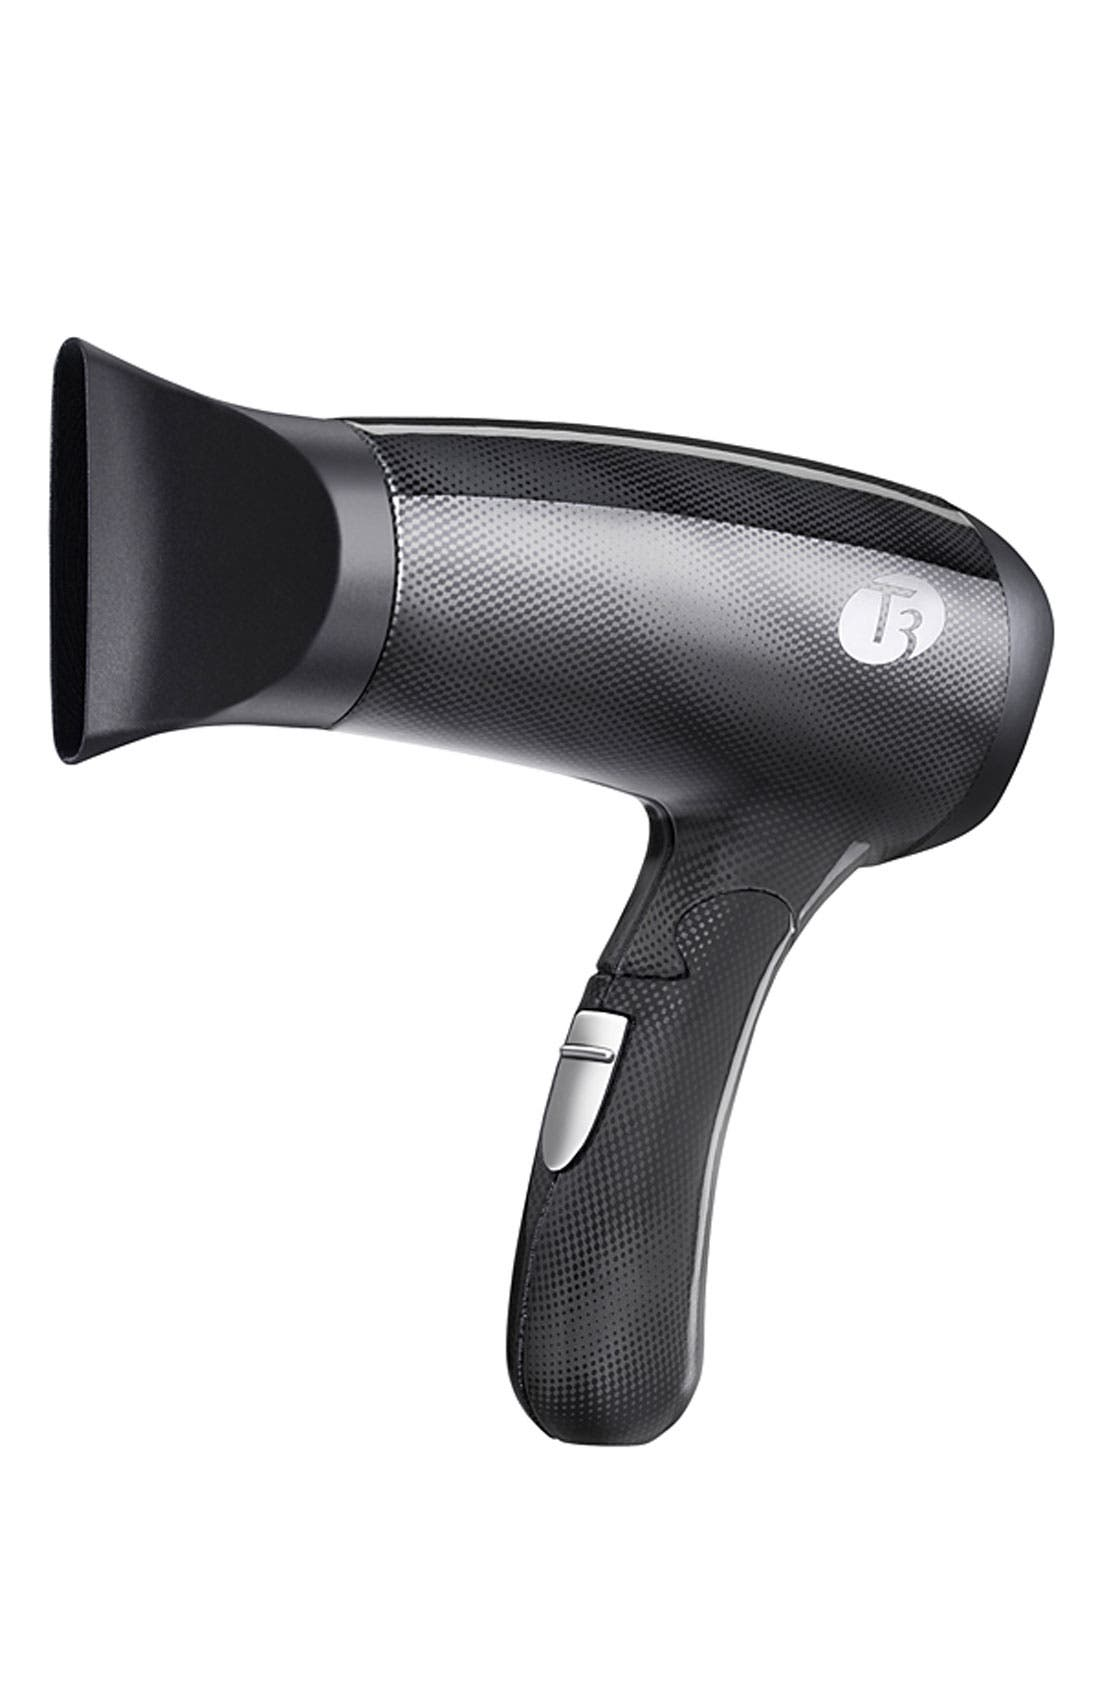 Alternate Image 1 Selected - T3 'Featherweight Journey' Travel Hair Dryer